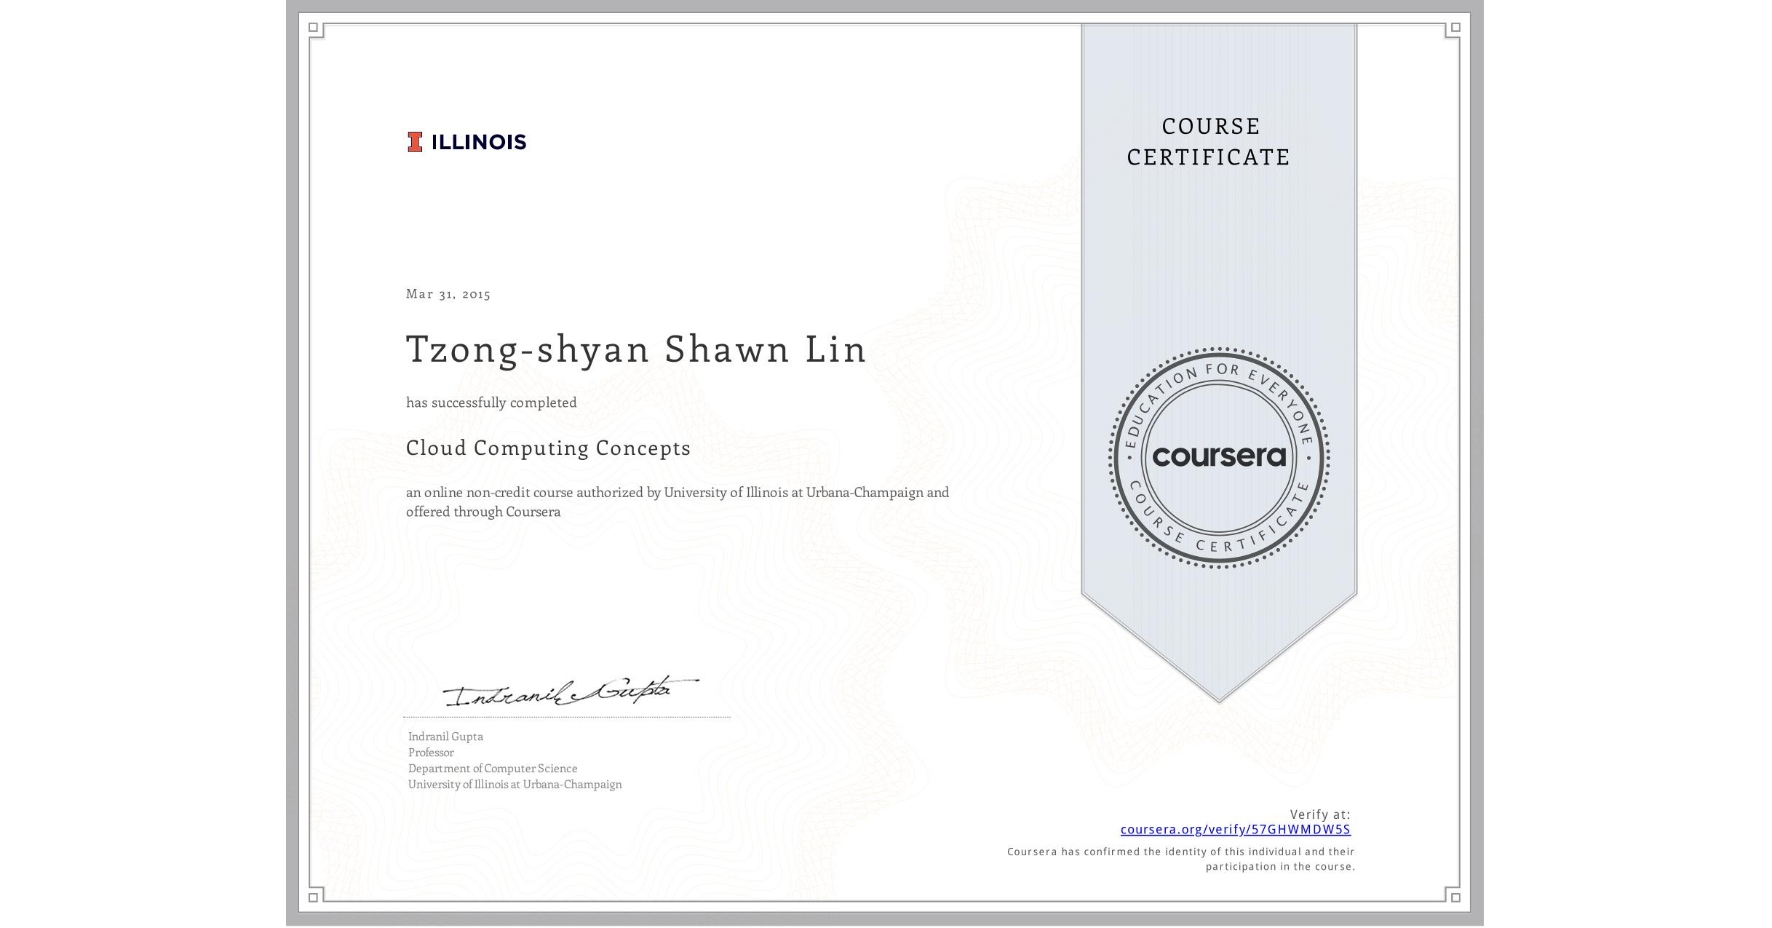 View certificate for Tzong-shyan Shawn Lin, Cloud Computing Concepts, an online non-credit course authorized by University of Illinois at Urbana-Champaign and offered through Coursera